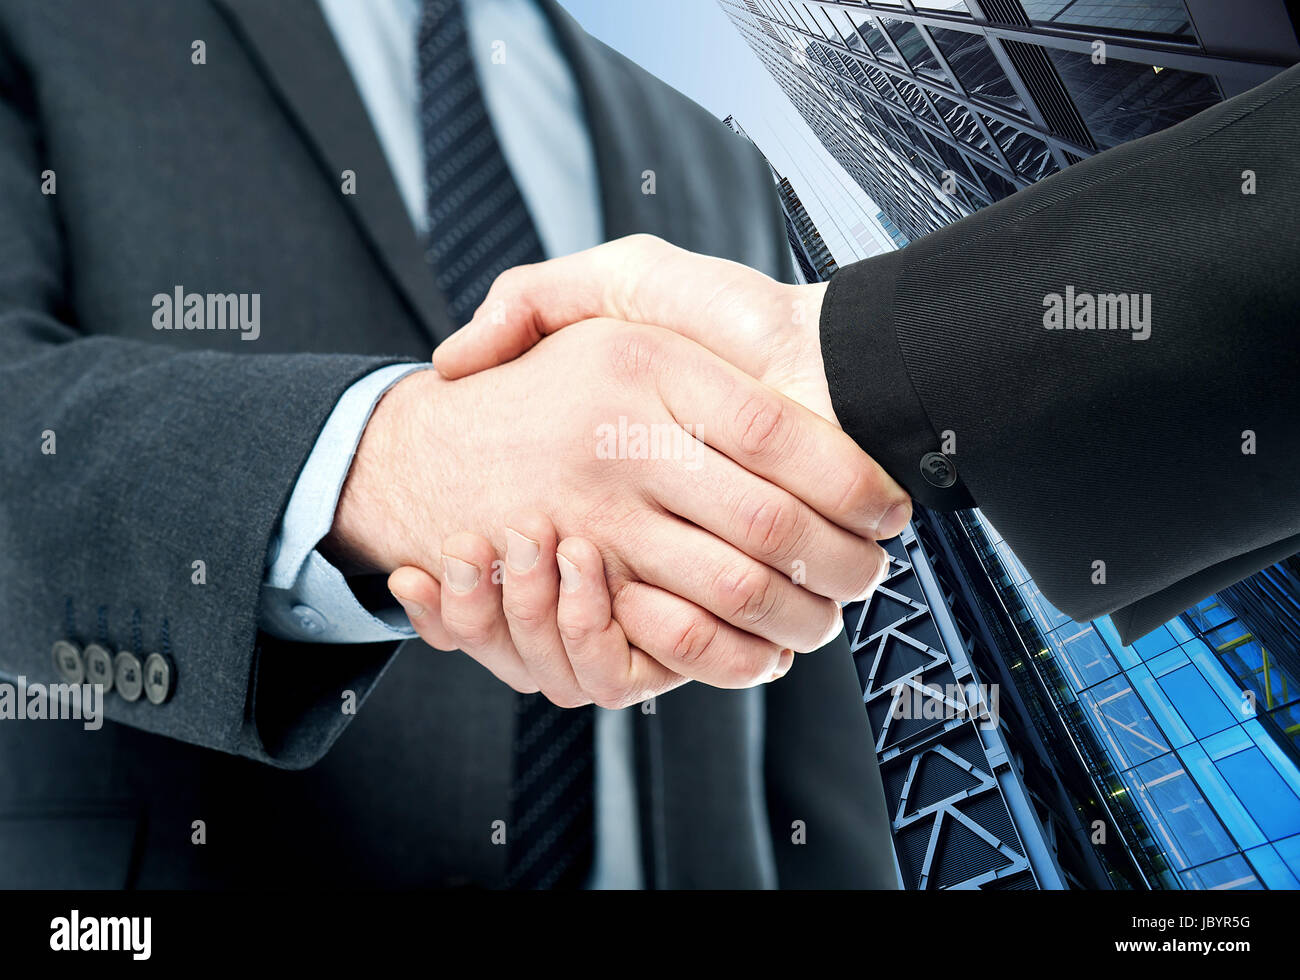 Business handshake, the deal Is finalized. - Stock Image